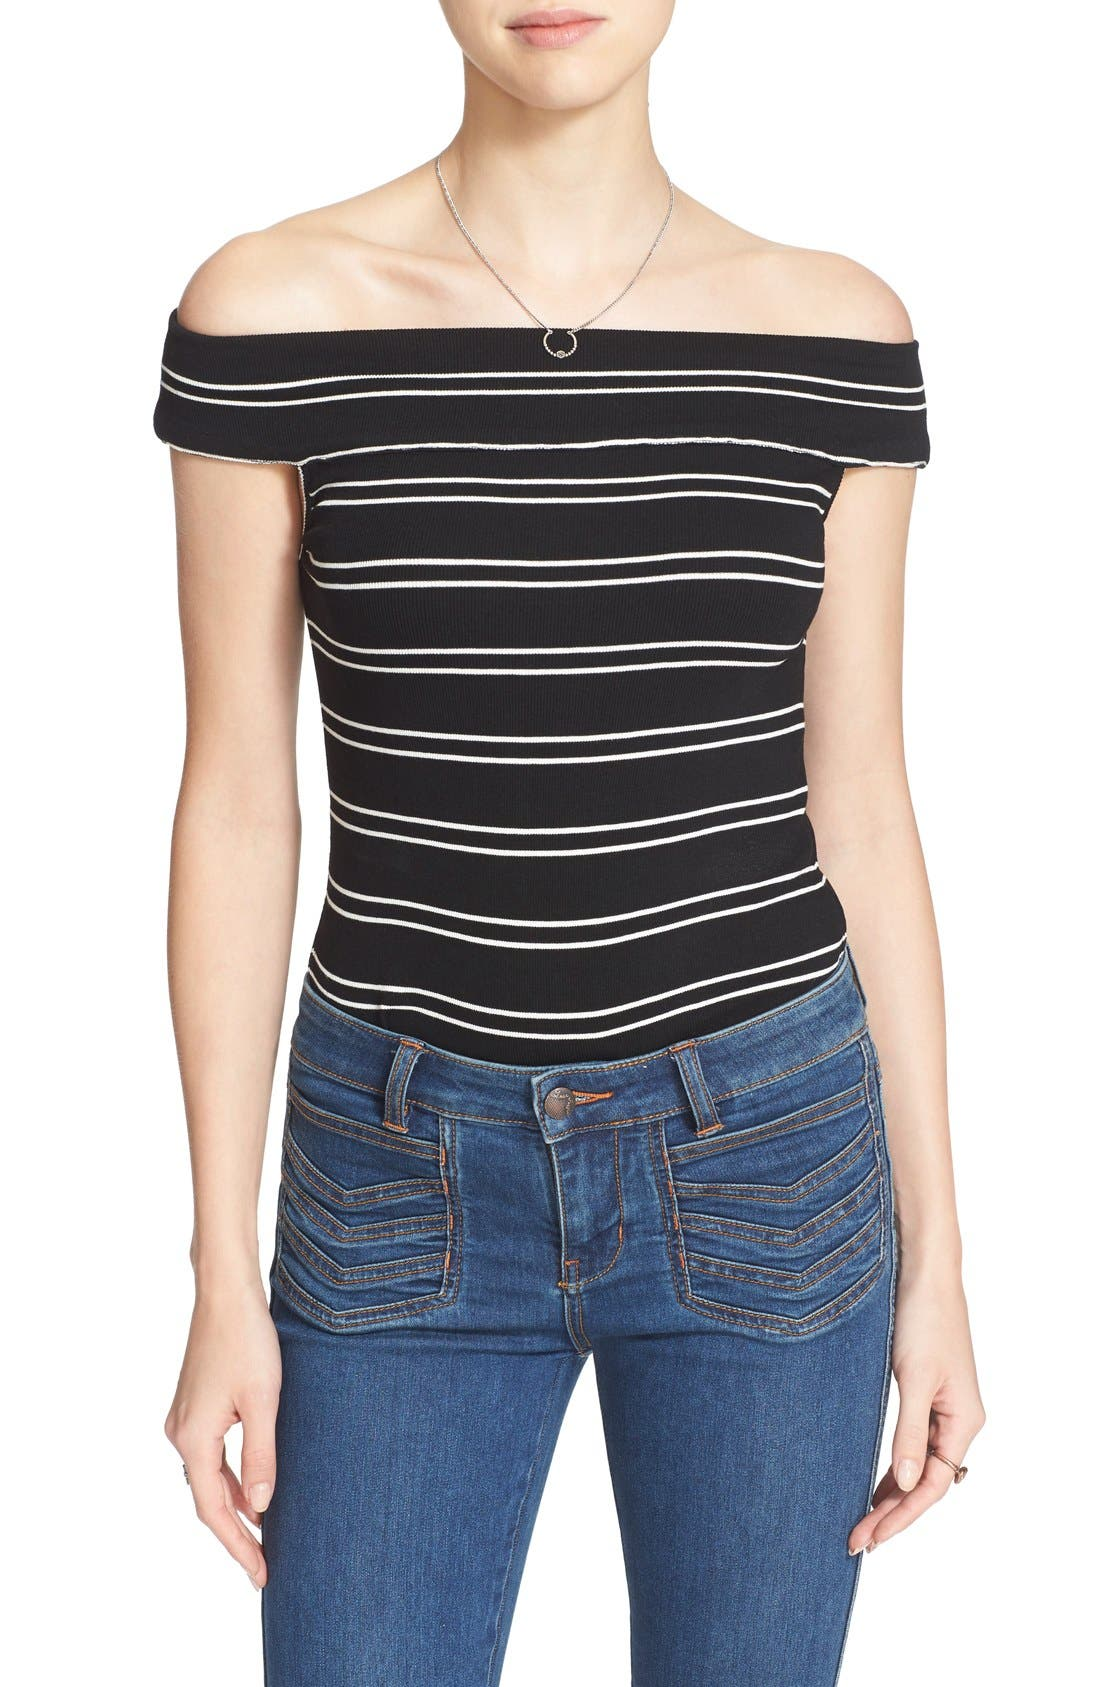 Alternate Image 1 Selected - Free People 'Yacht Club' Stripe Off the Shoulder Tee